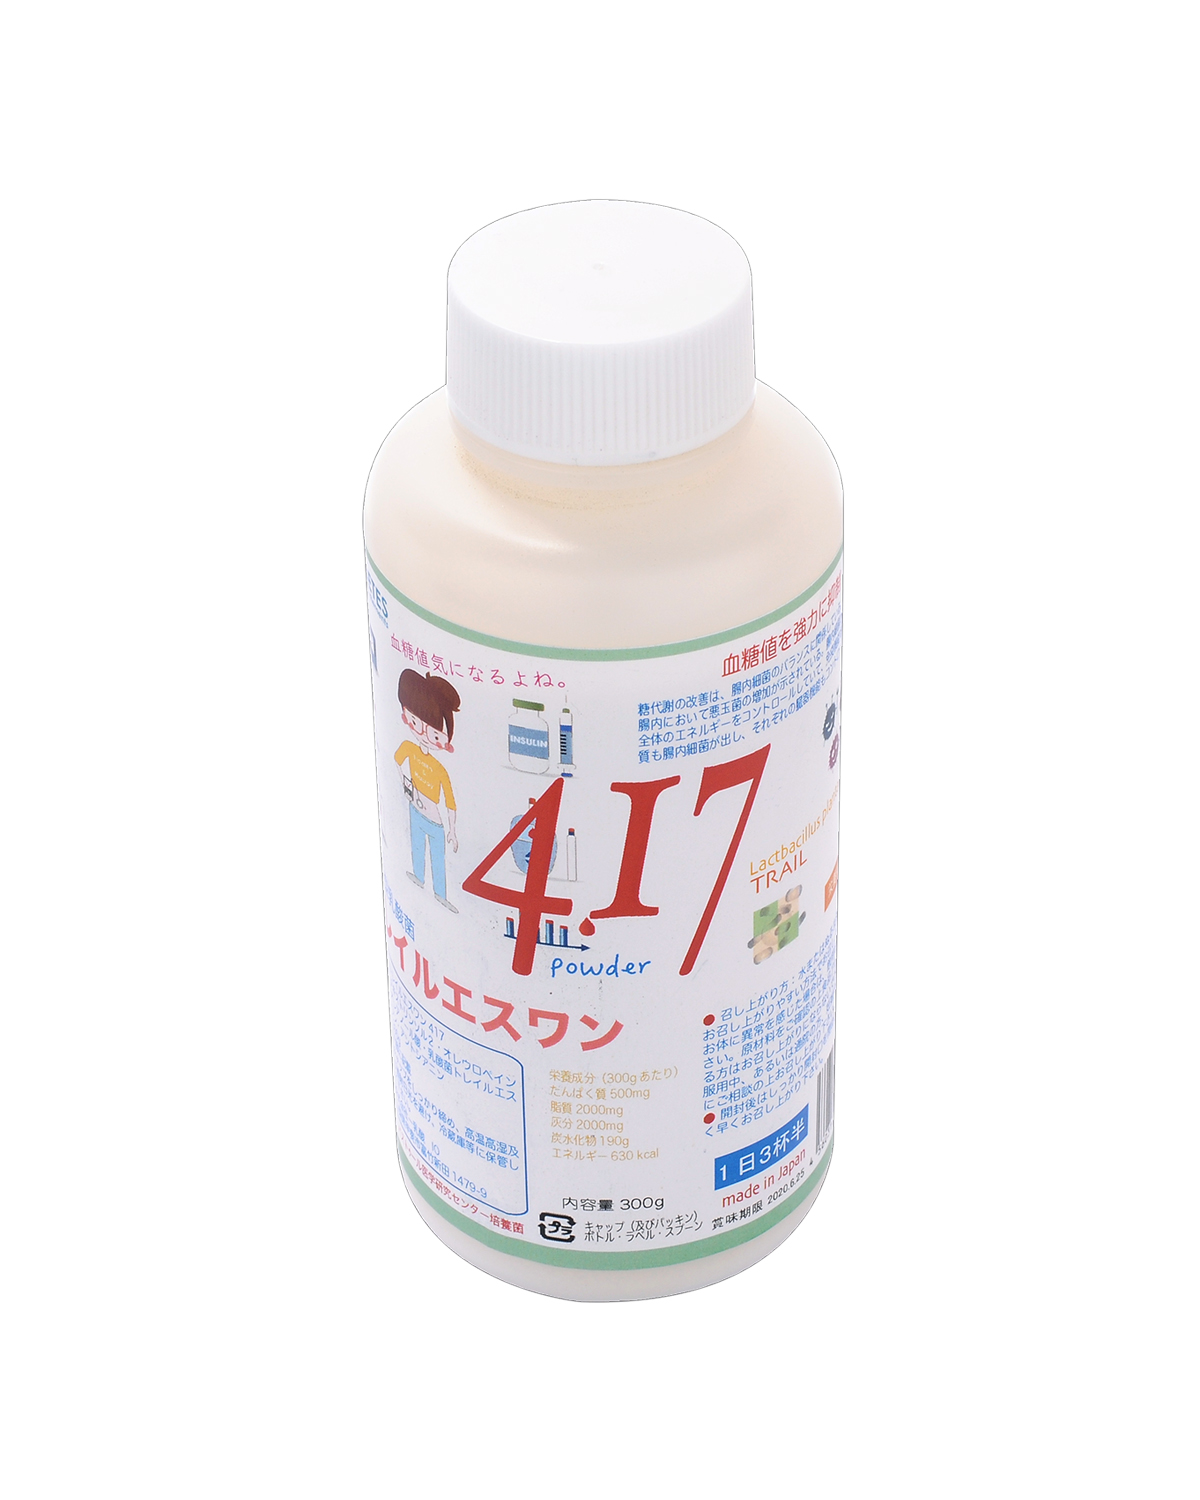 原装日本生产 活性型乳酸菌TRAIL-S1 No.417 300g